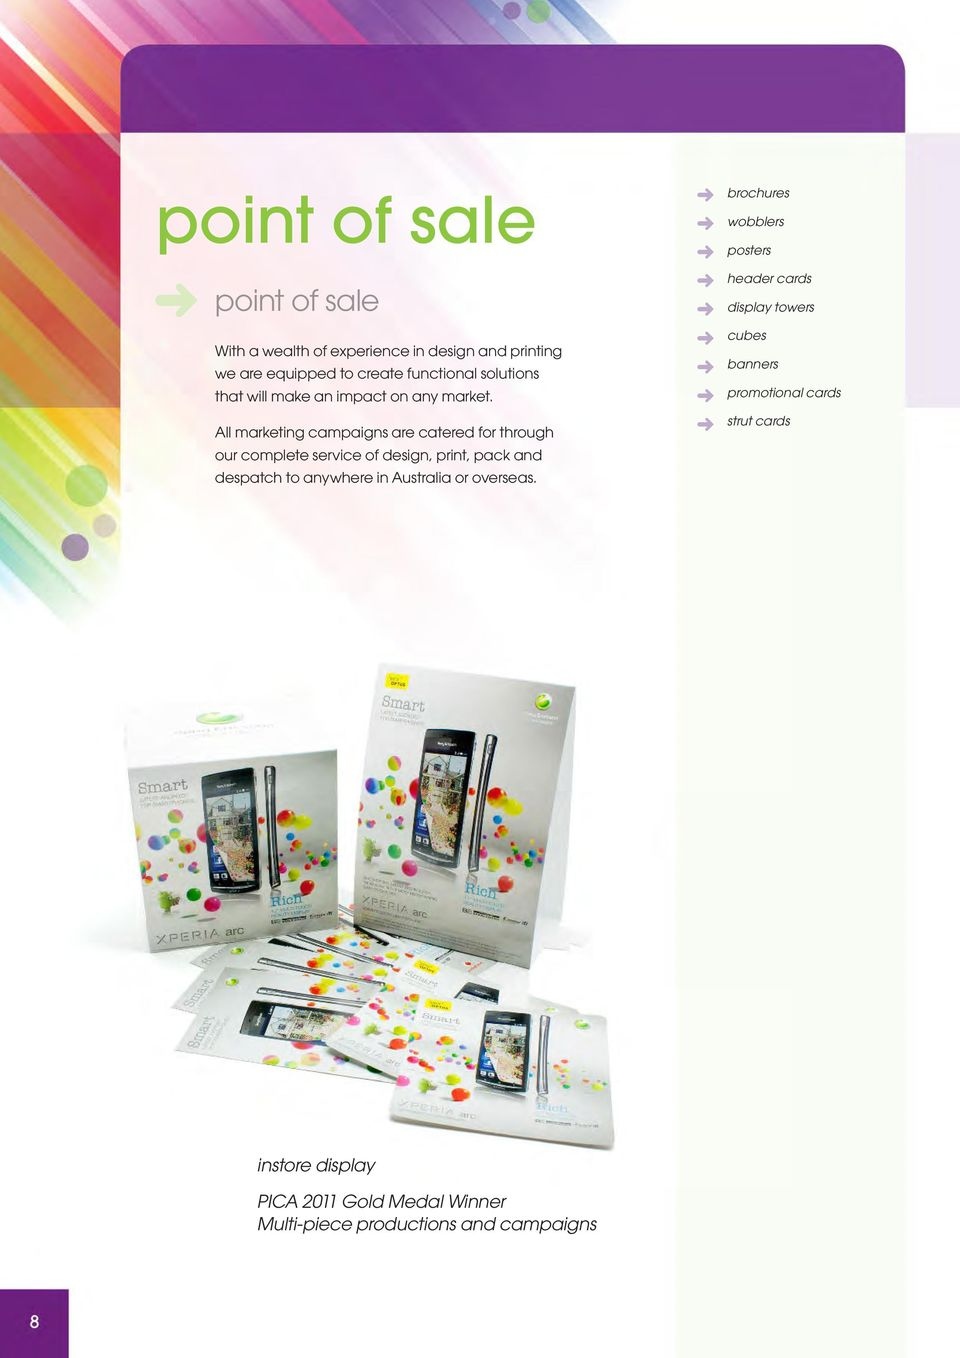 All marketing campaigns are catered for through our complete service of design, print, pack and despatch to anywhere in